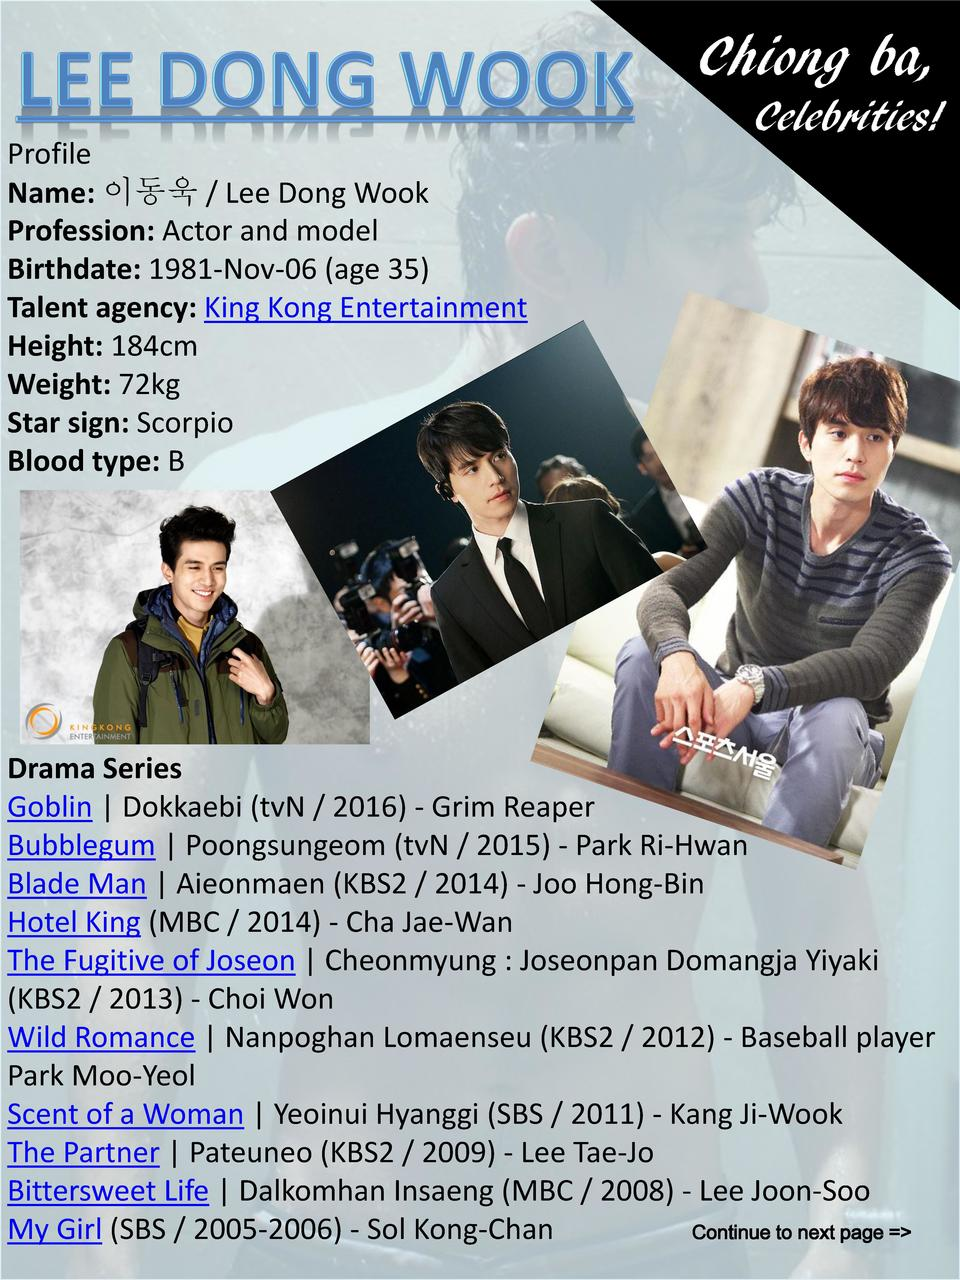 Chiong ba, Profile Name              Lee Dong Wook Profession  Actor and model Birthdate  1981-Nov-06  age 35  Talent agen...